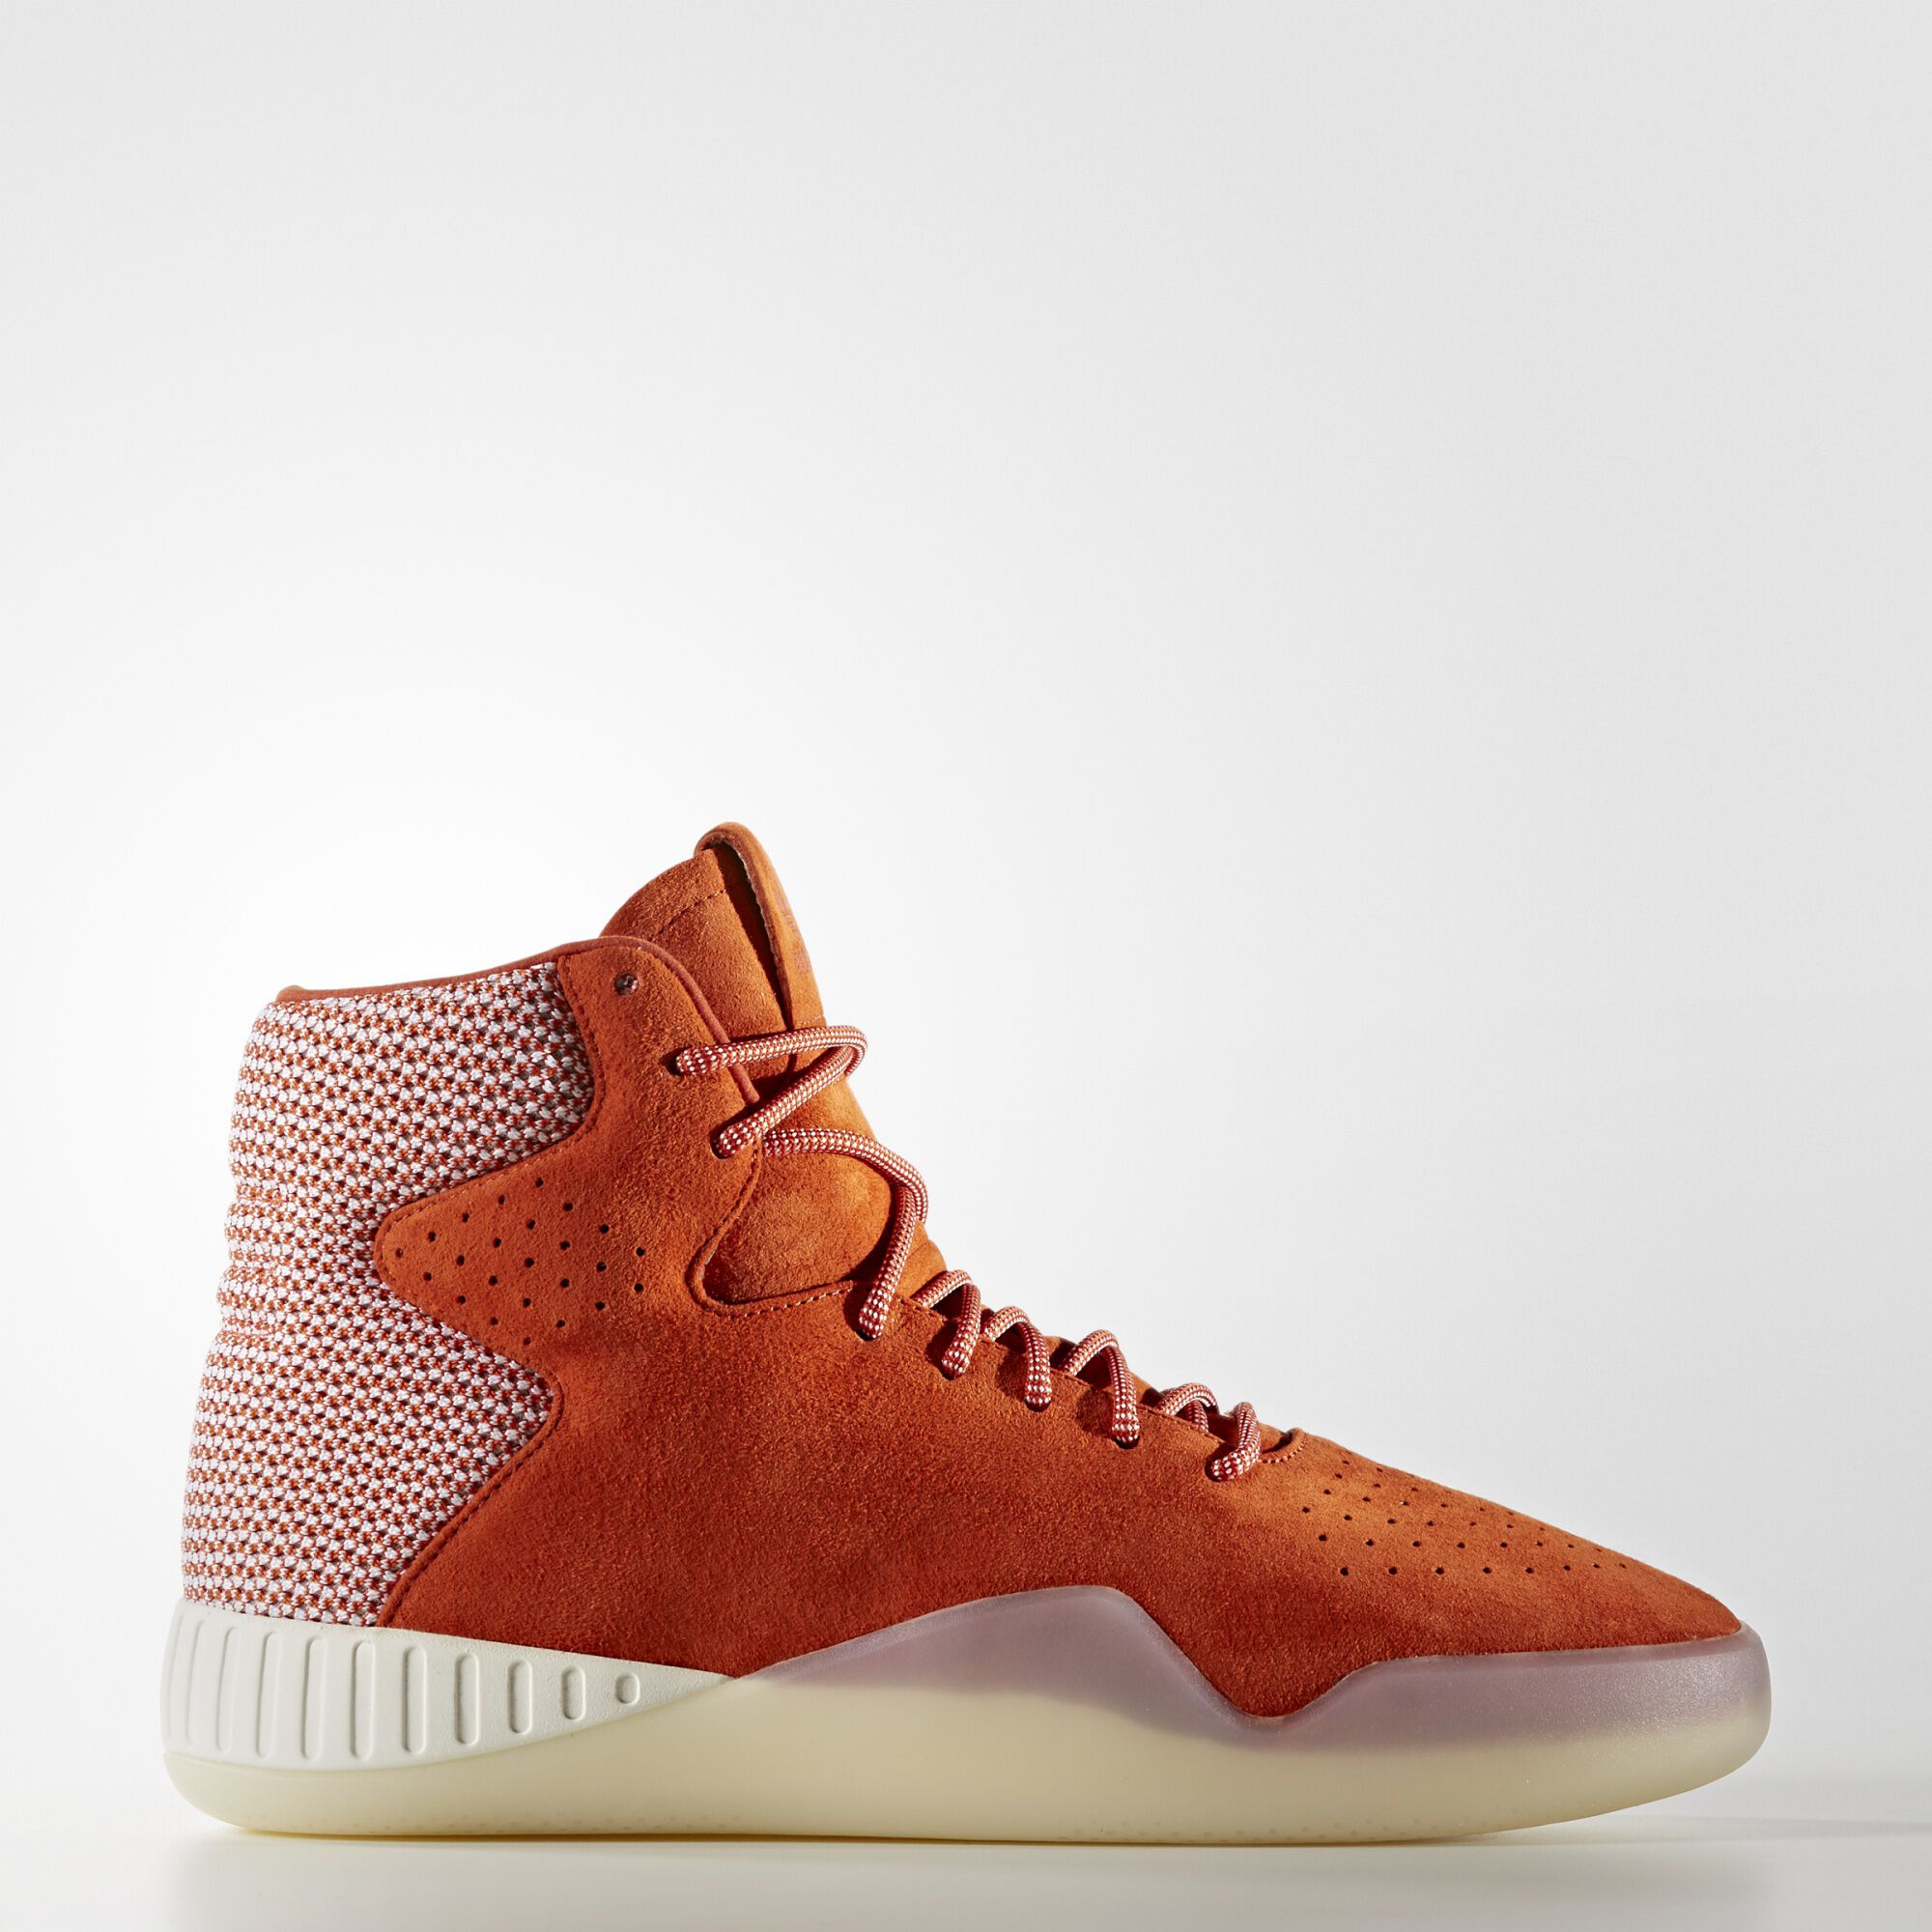 Adidas Originals Tubular Doom PK Brown Sneakers BB 2390